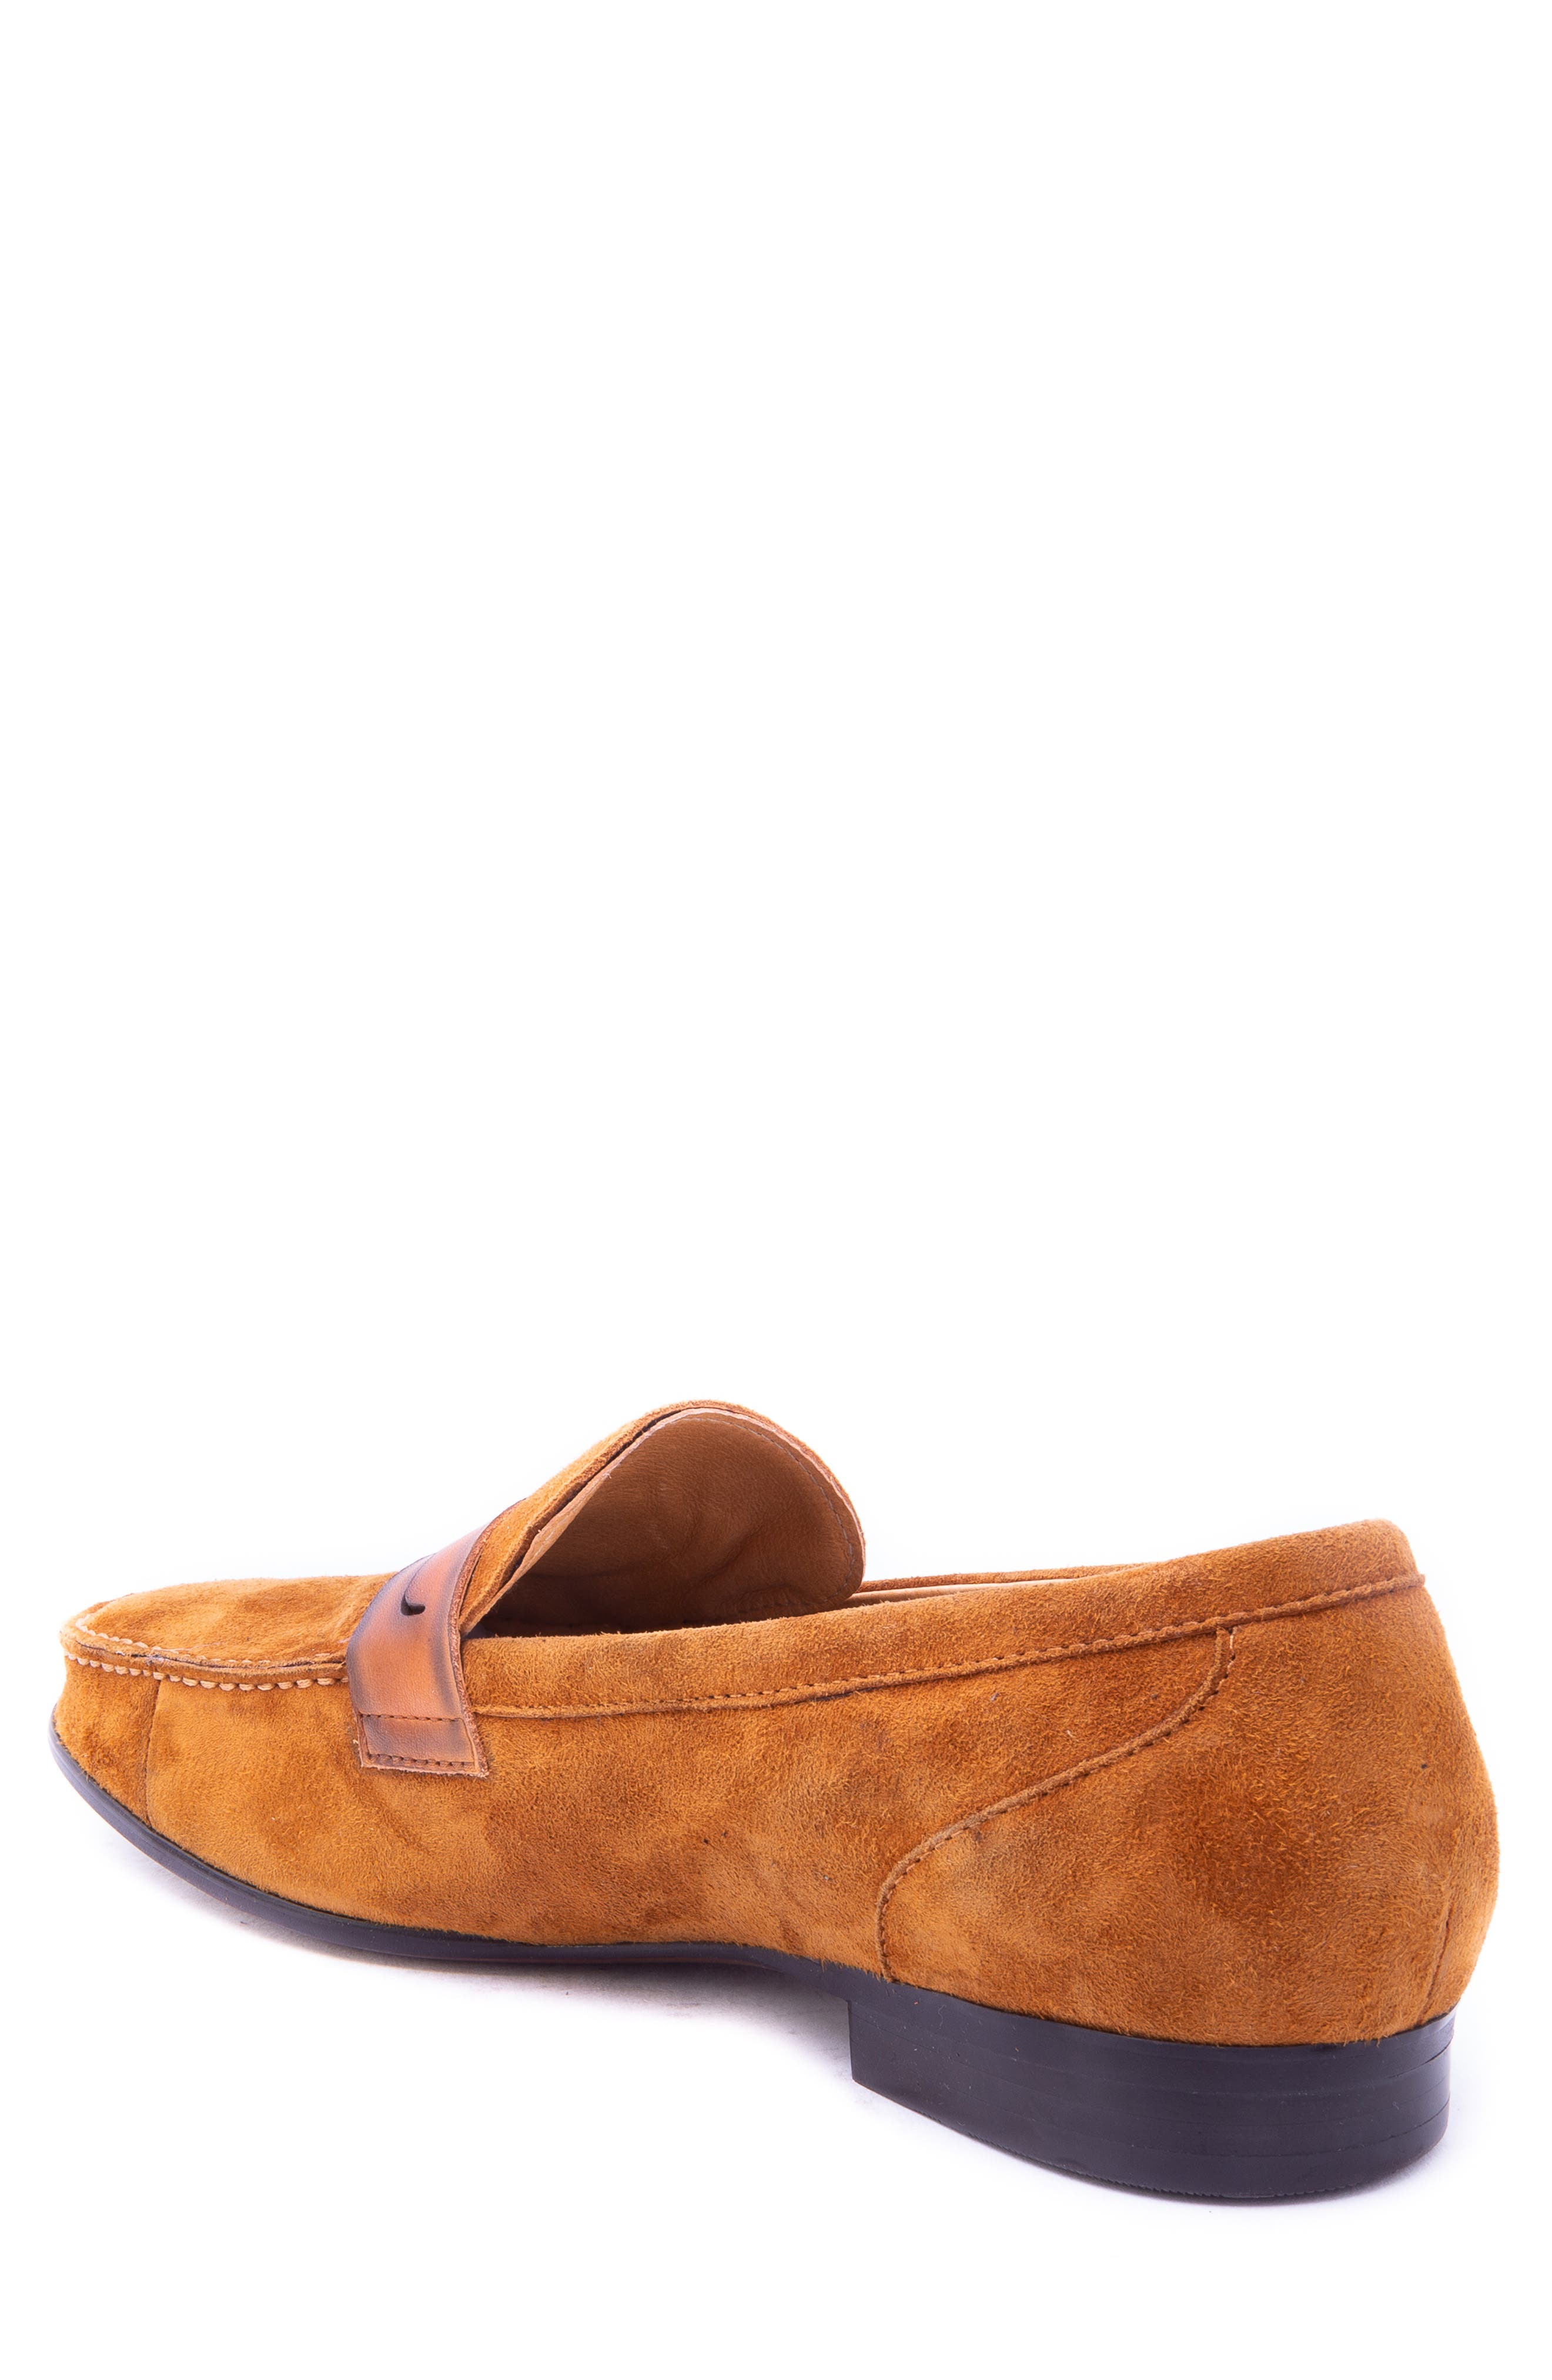 Opie Penny Loafer,                             Alternate thumbnail 2, color,                             COGNAC SUEDE/ LEATHER